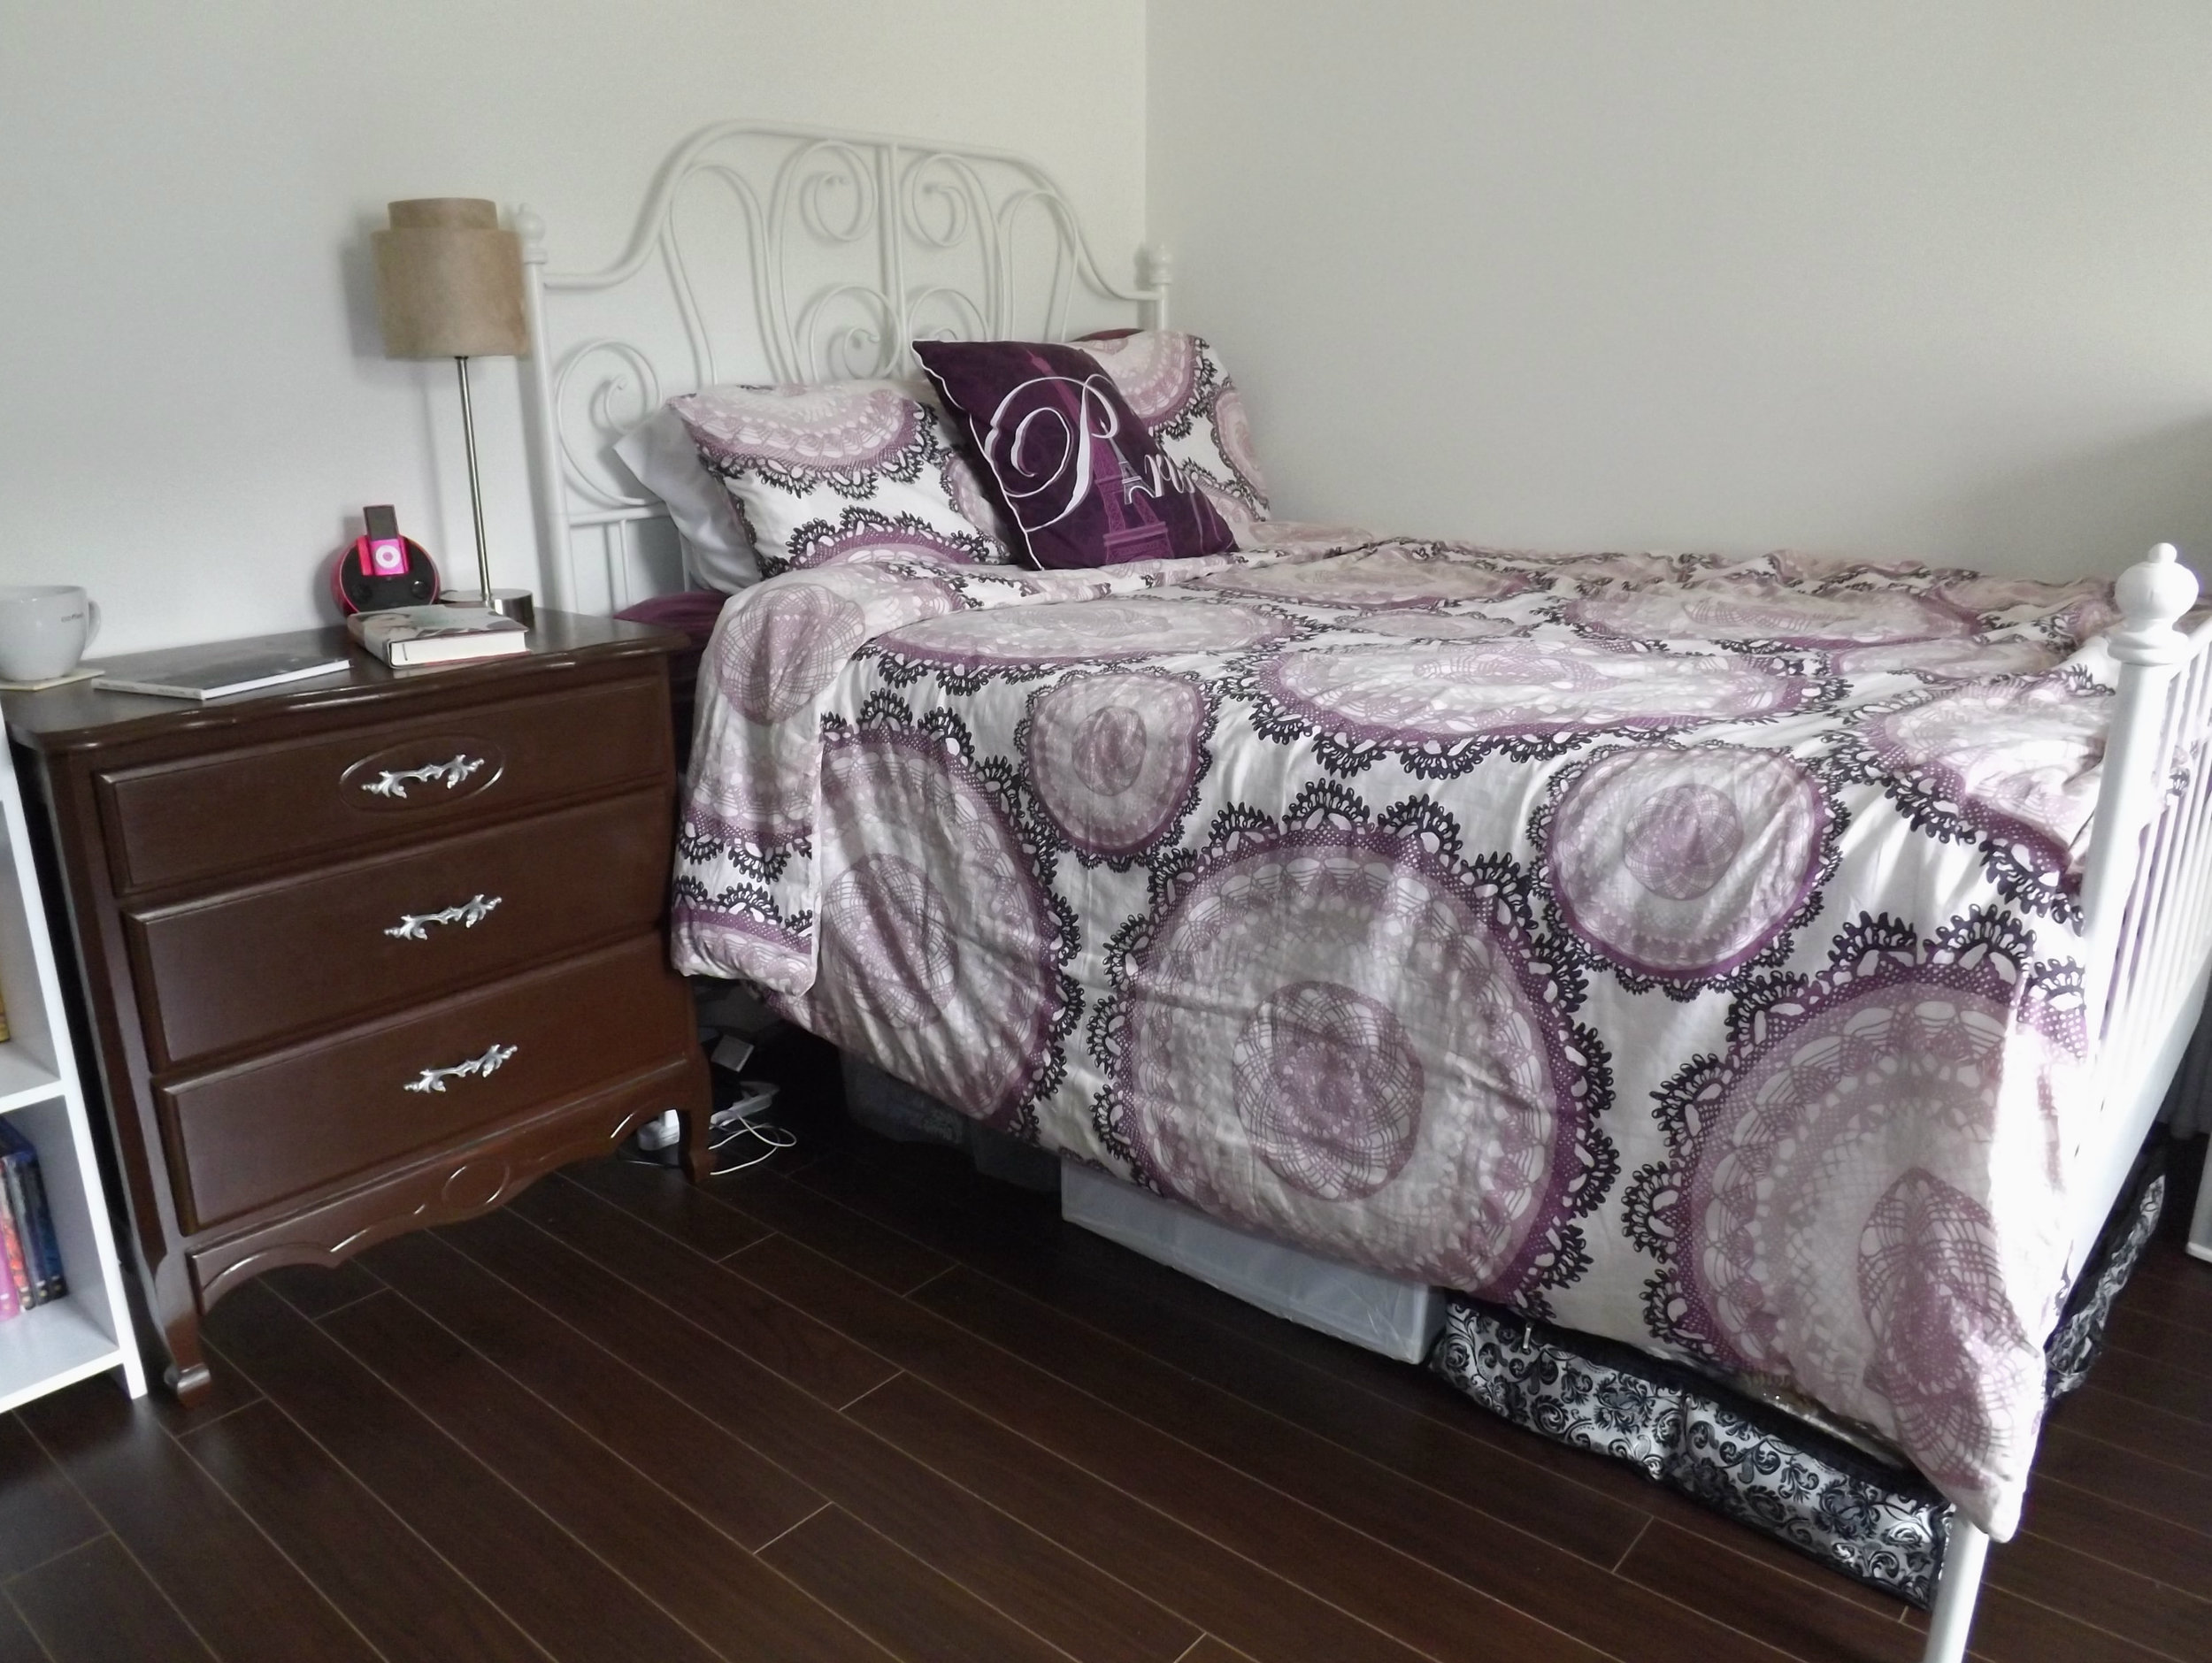 Patterned Bed | Tall Girl Meets World